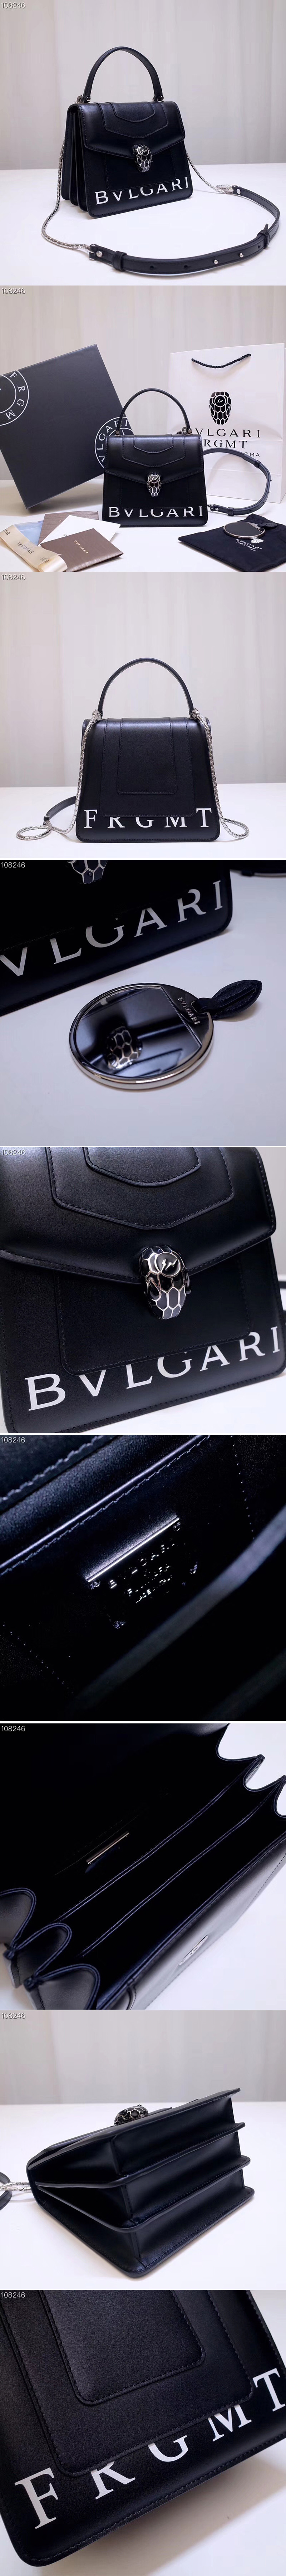 Replica Bvlgari Serpenti Forever 38329 Crossbody Bags Black Calf Leather With Print